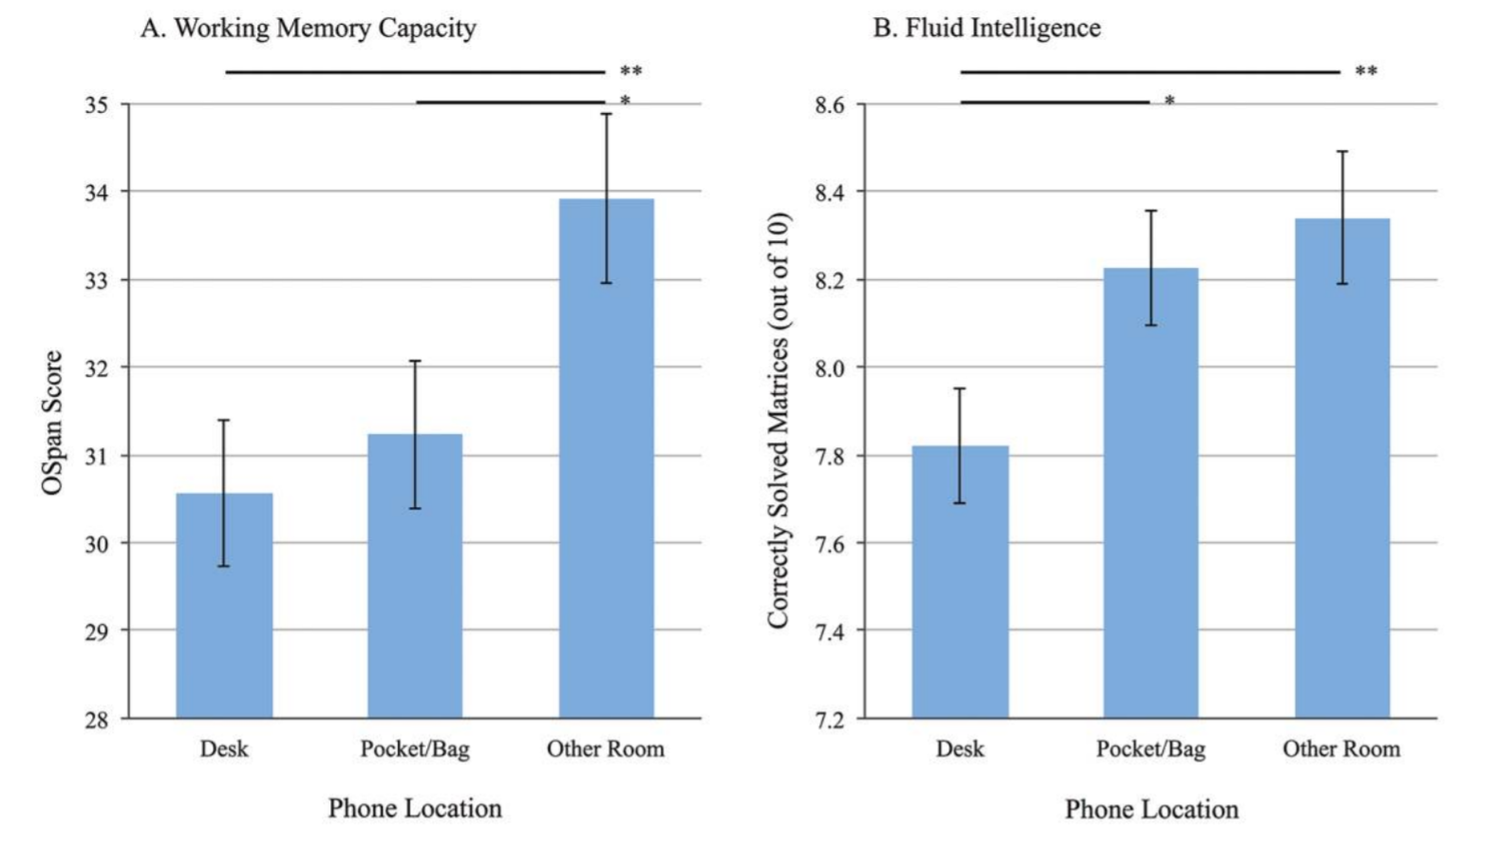 Researchers found that the mere presence of a smartphone reduces available cognitive capacity. [17]